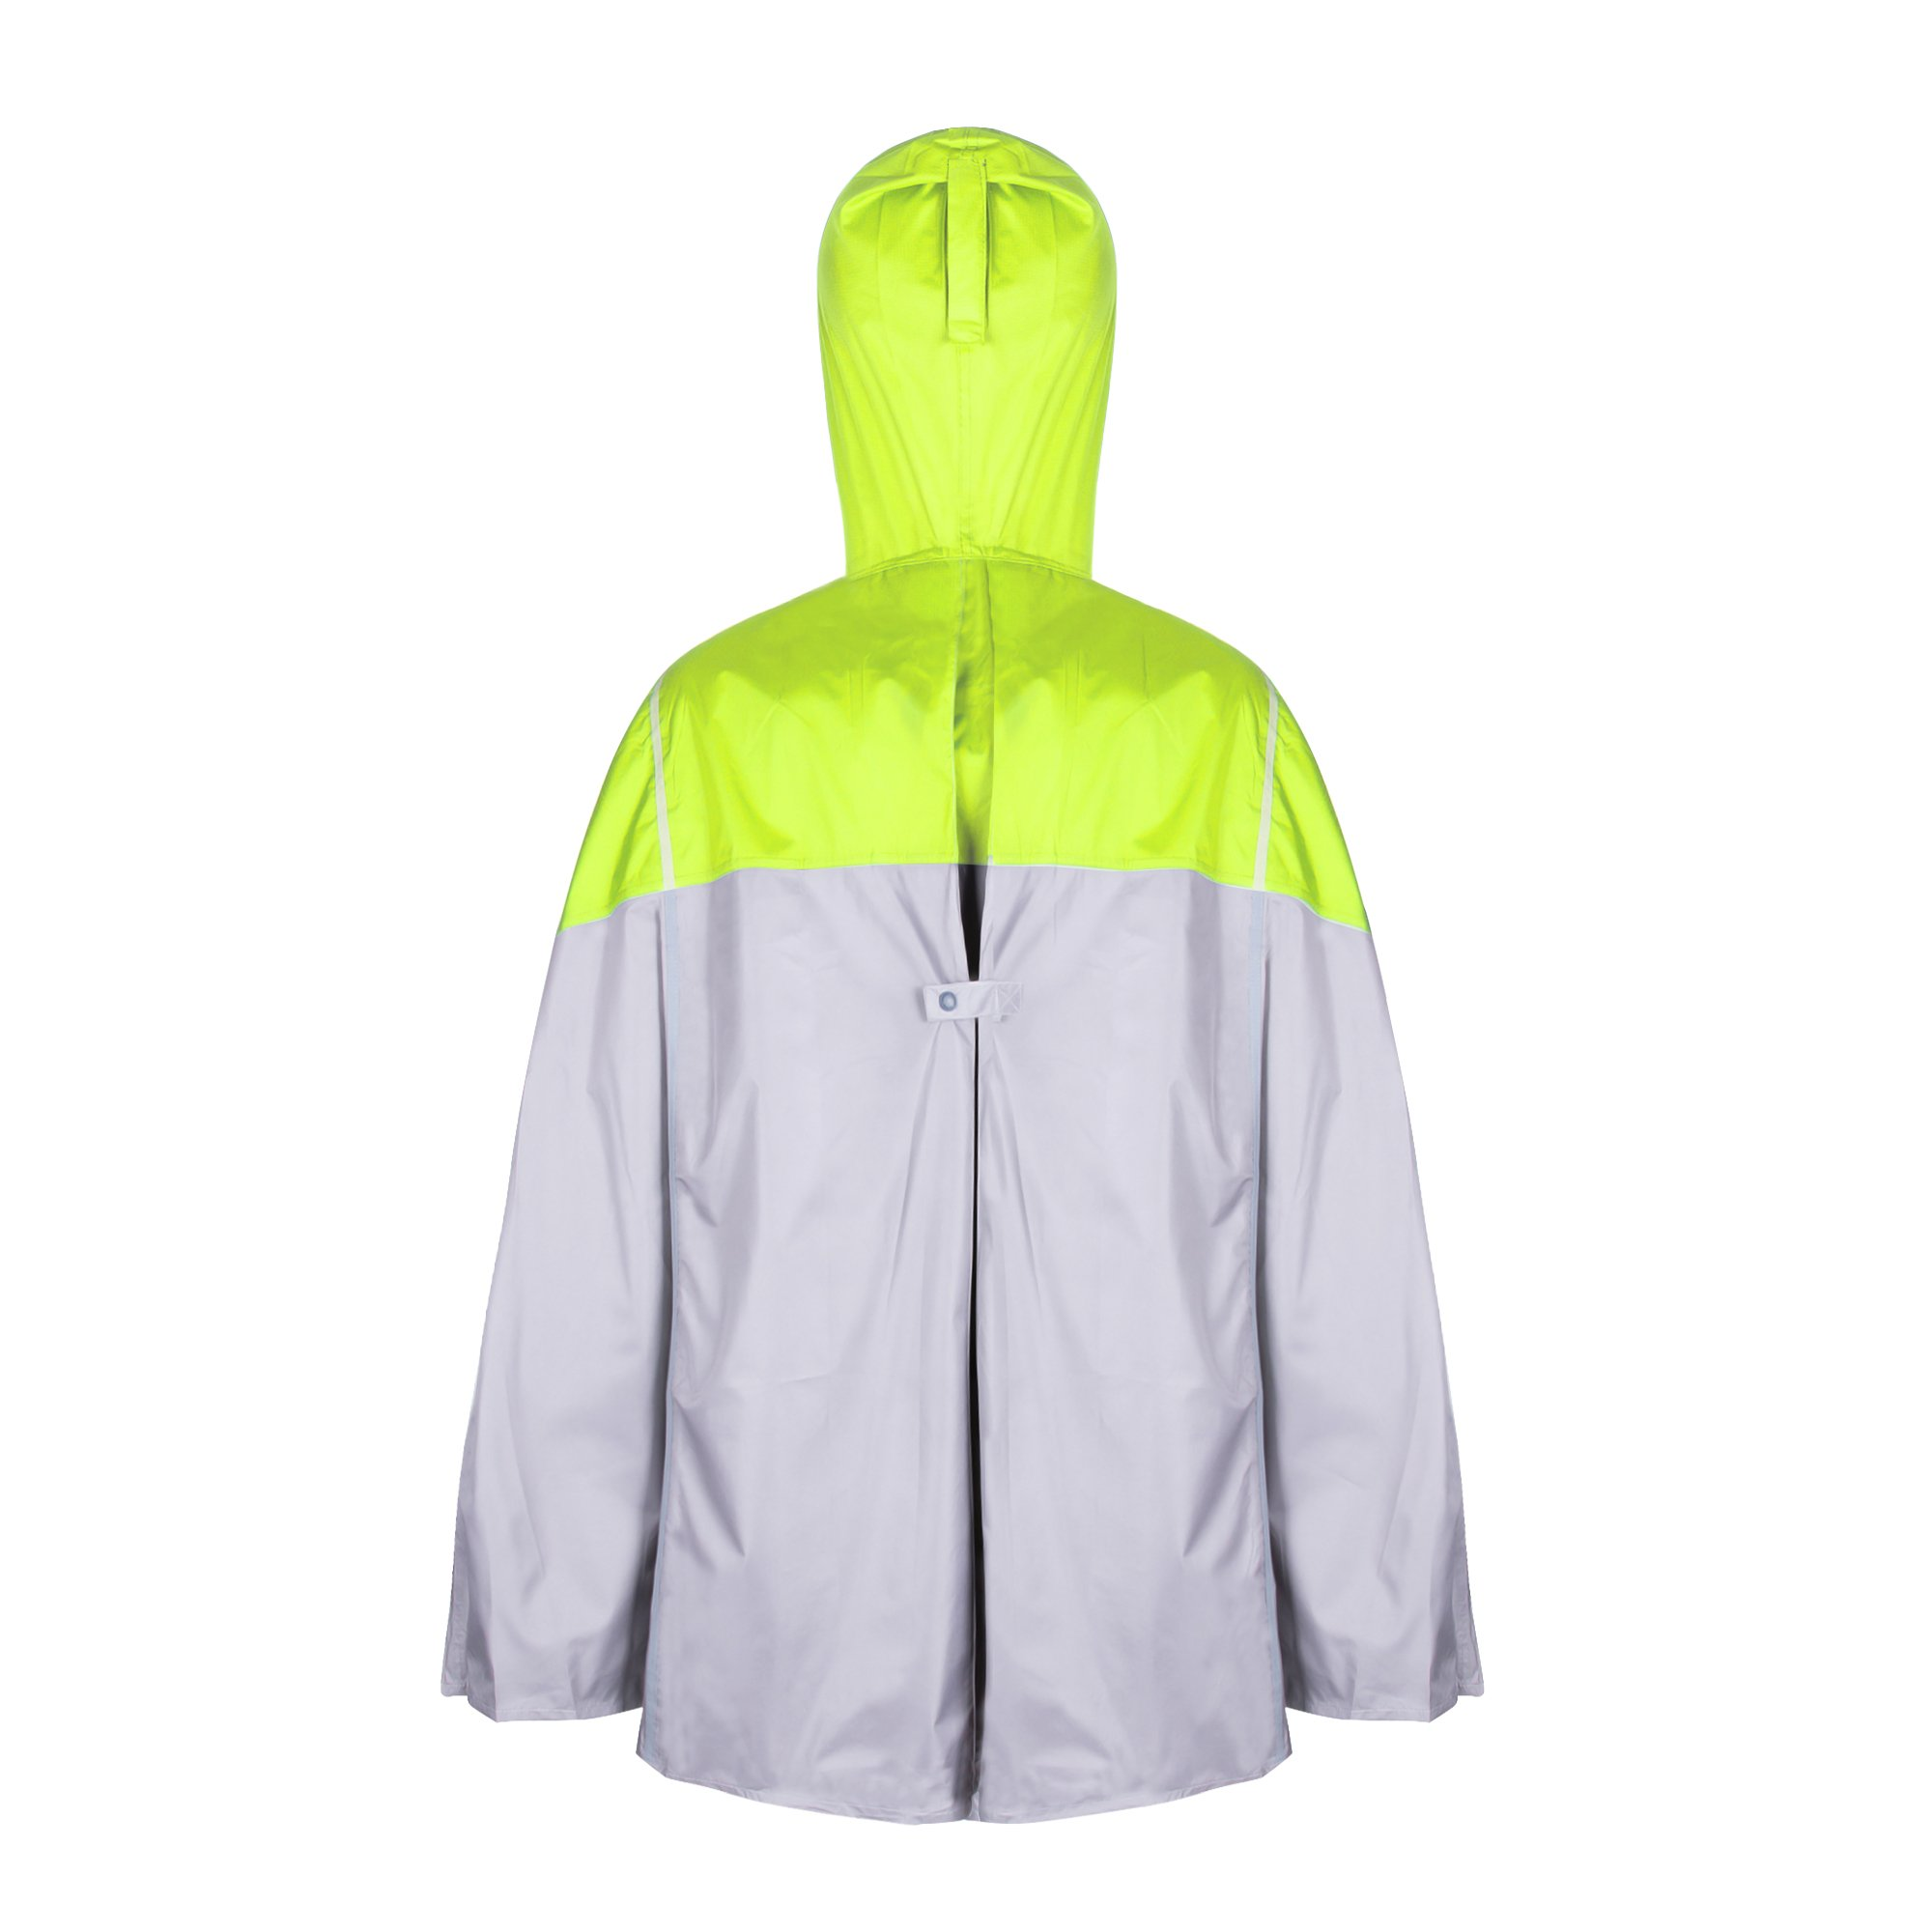 Balnna Rain Poncho with Hoods and Zipper Waterproof Raincoat for Outdoor Activities-Green by Balnna (Image #4)